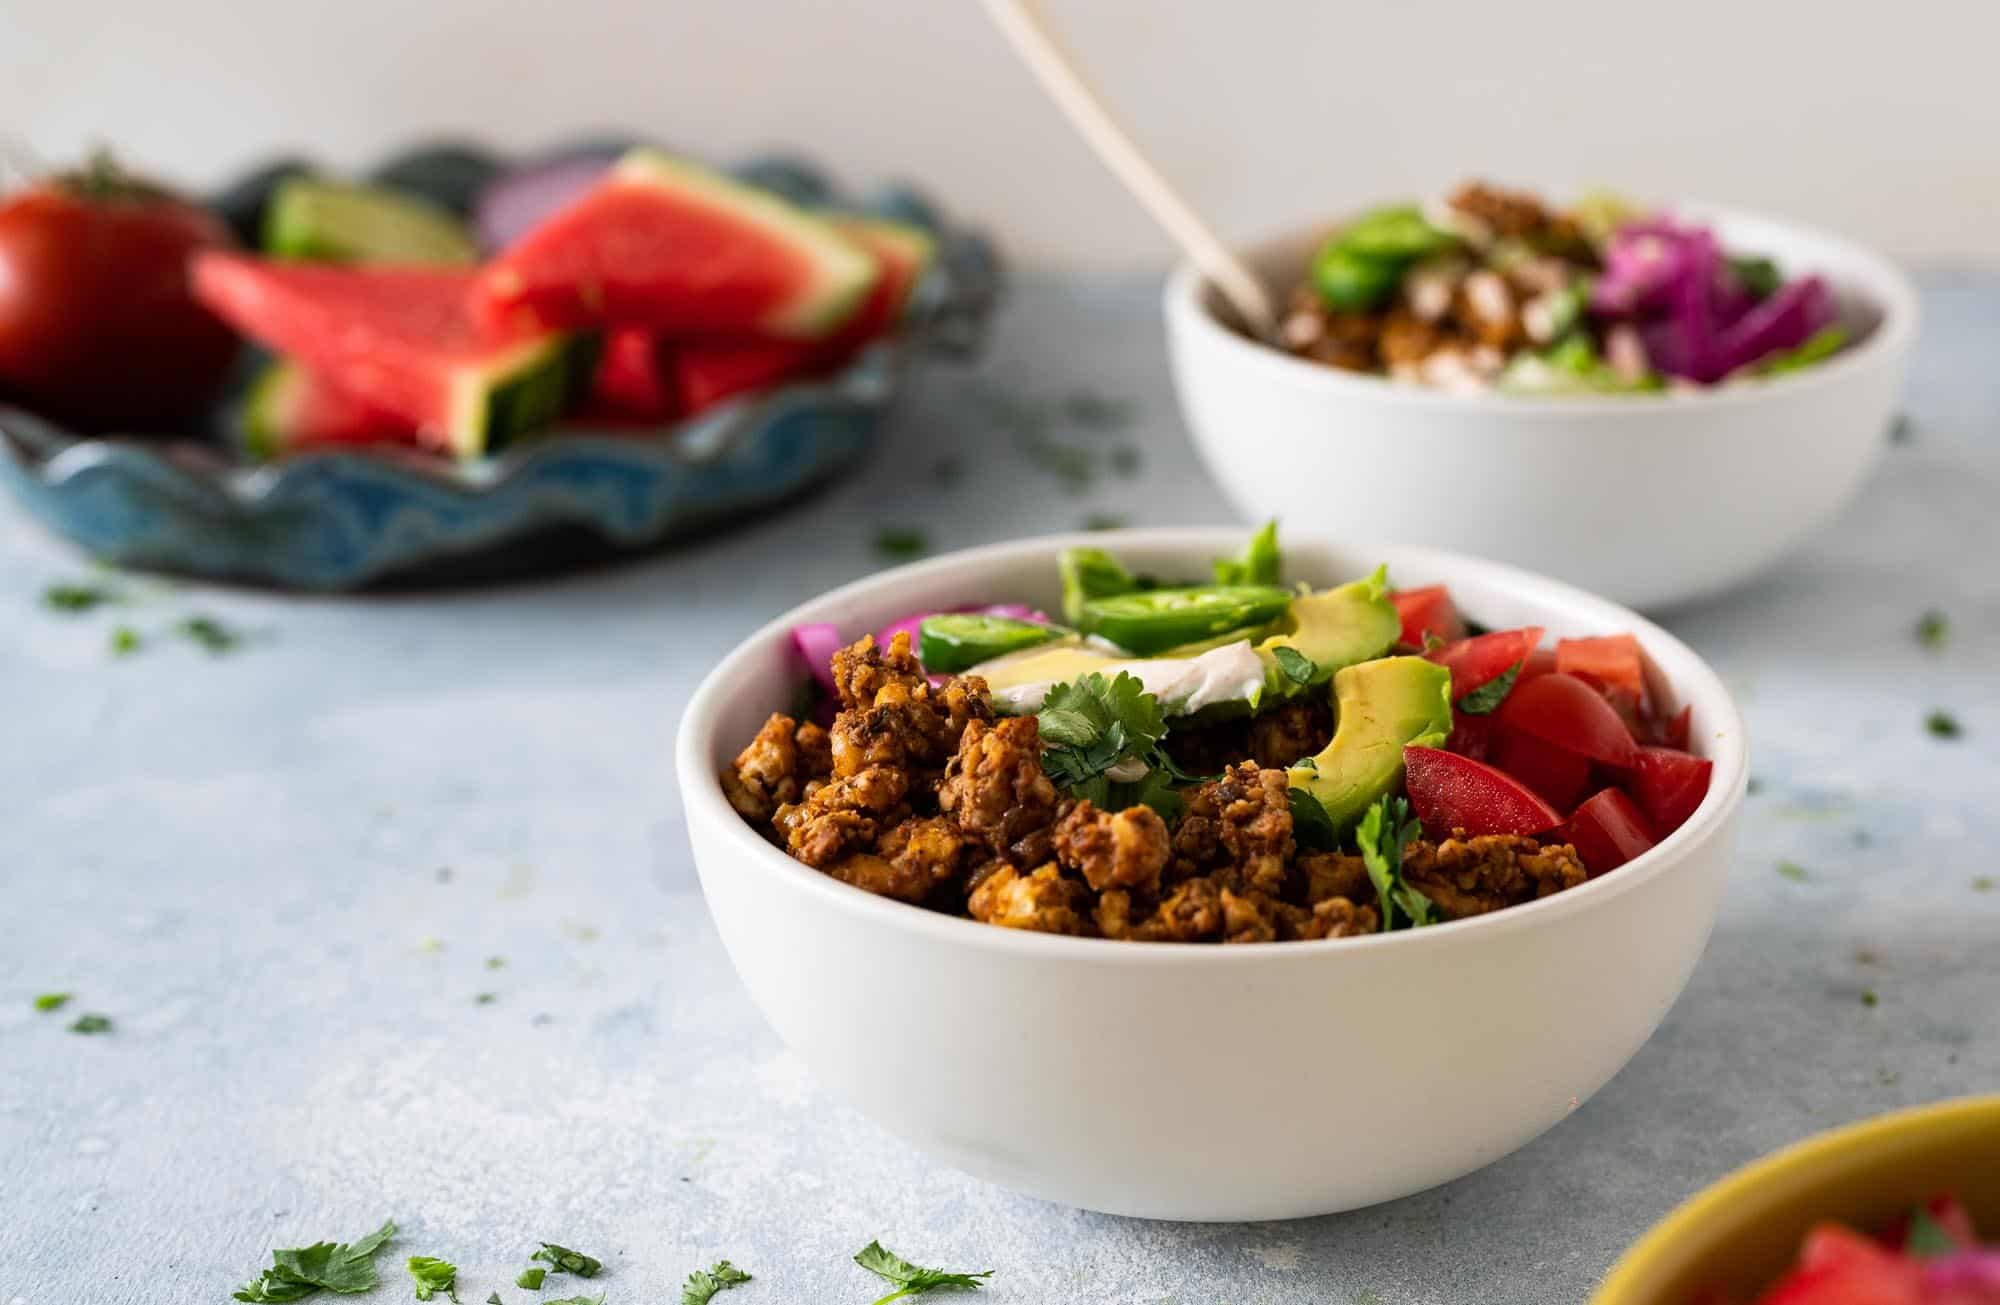 Vegan Taco Salad Bowls with Tempeh Walnut Taco Meat recipe via The Pig & Quill #plantbased #grainfree